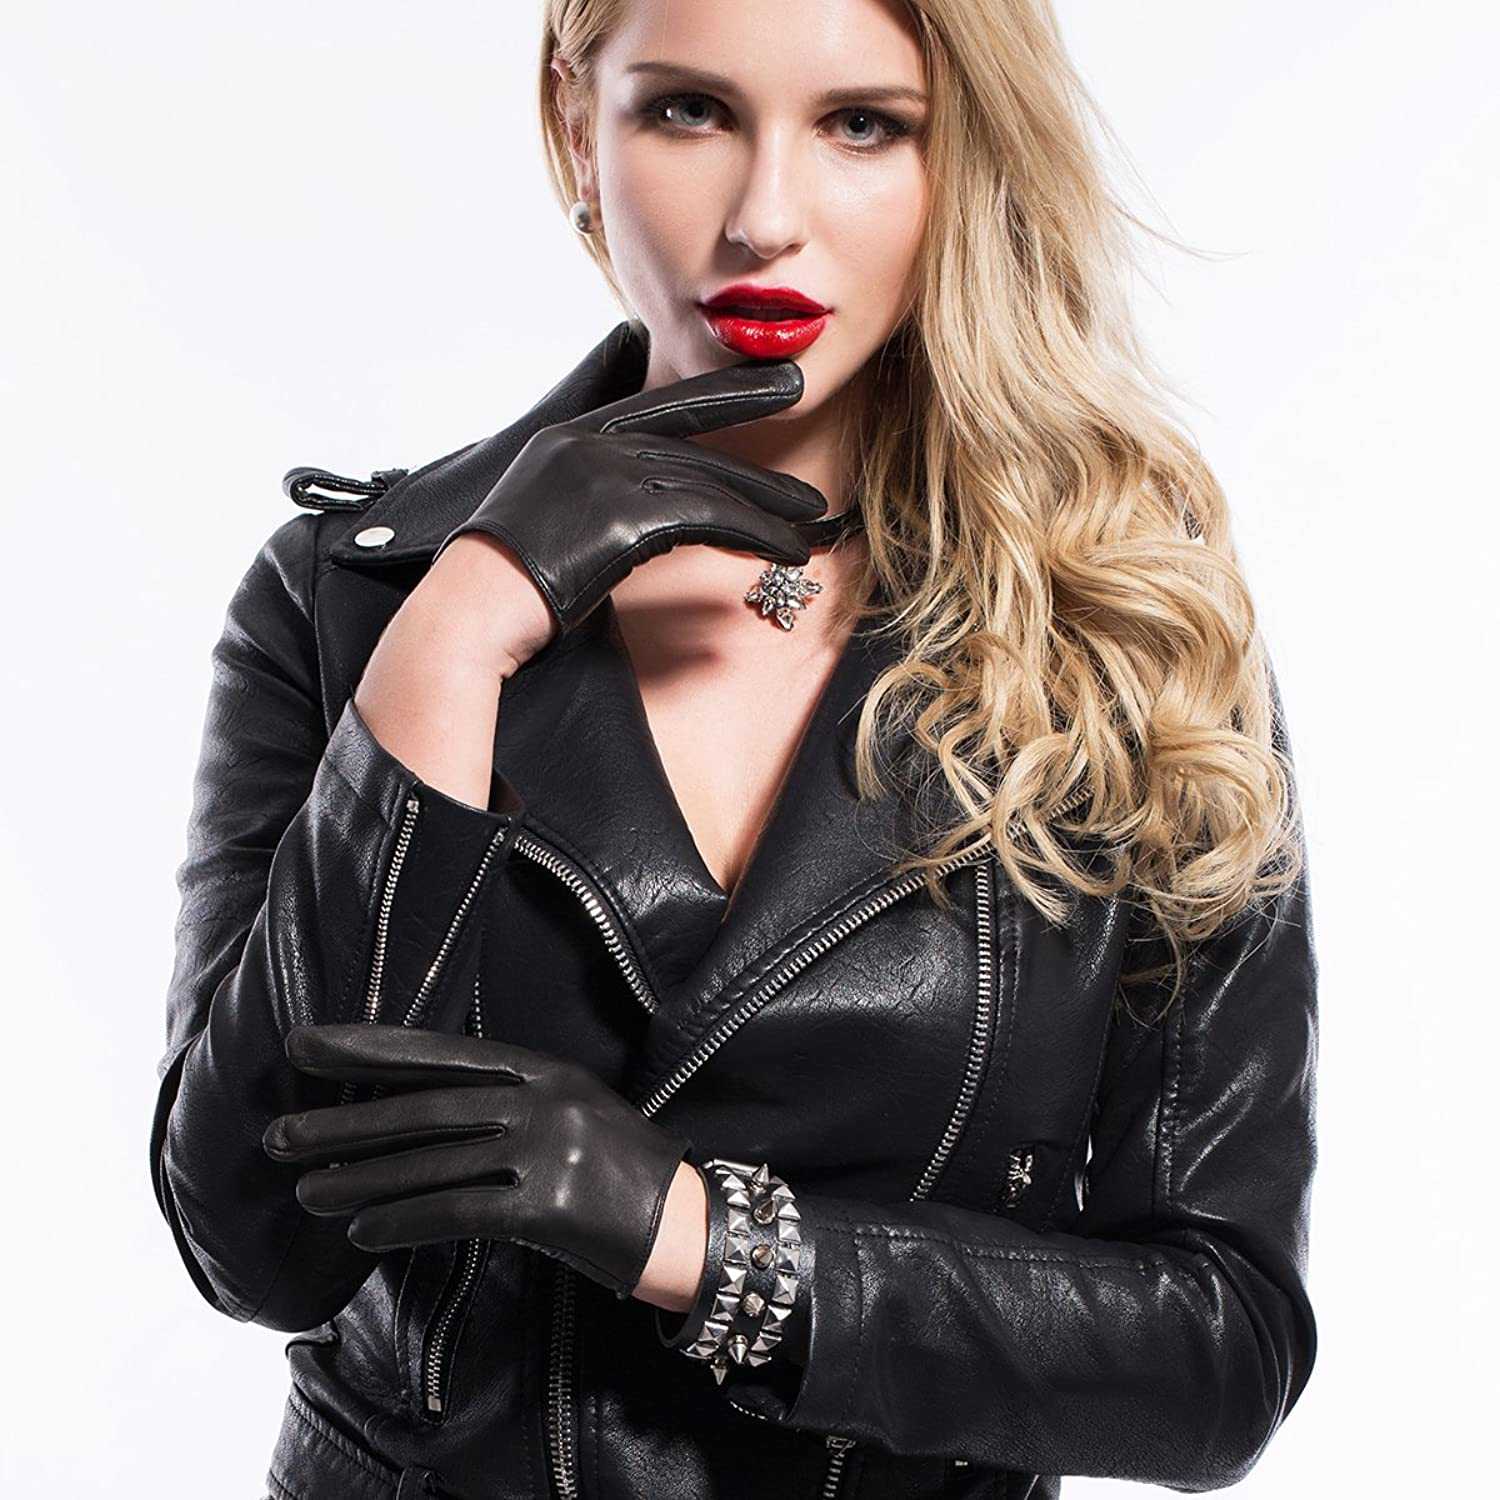 Imagini pentru woman with leather gloves